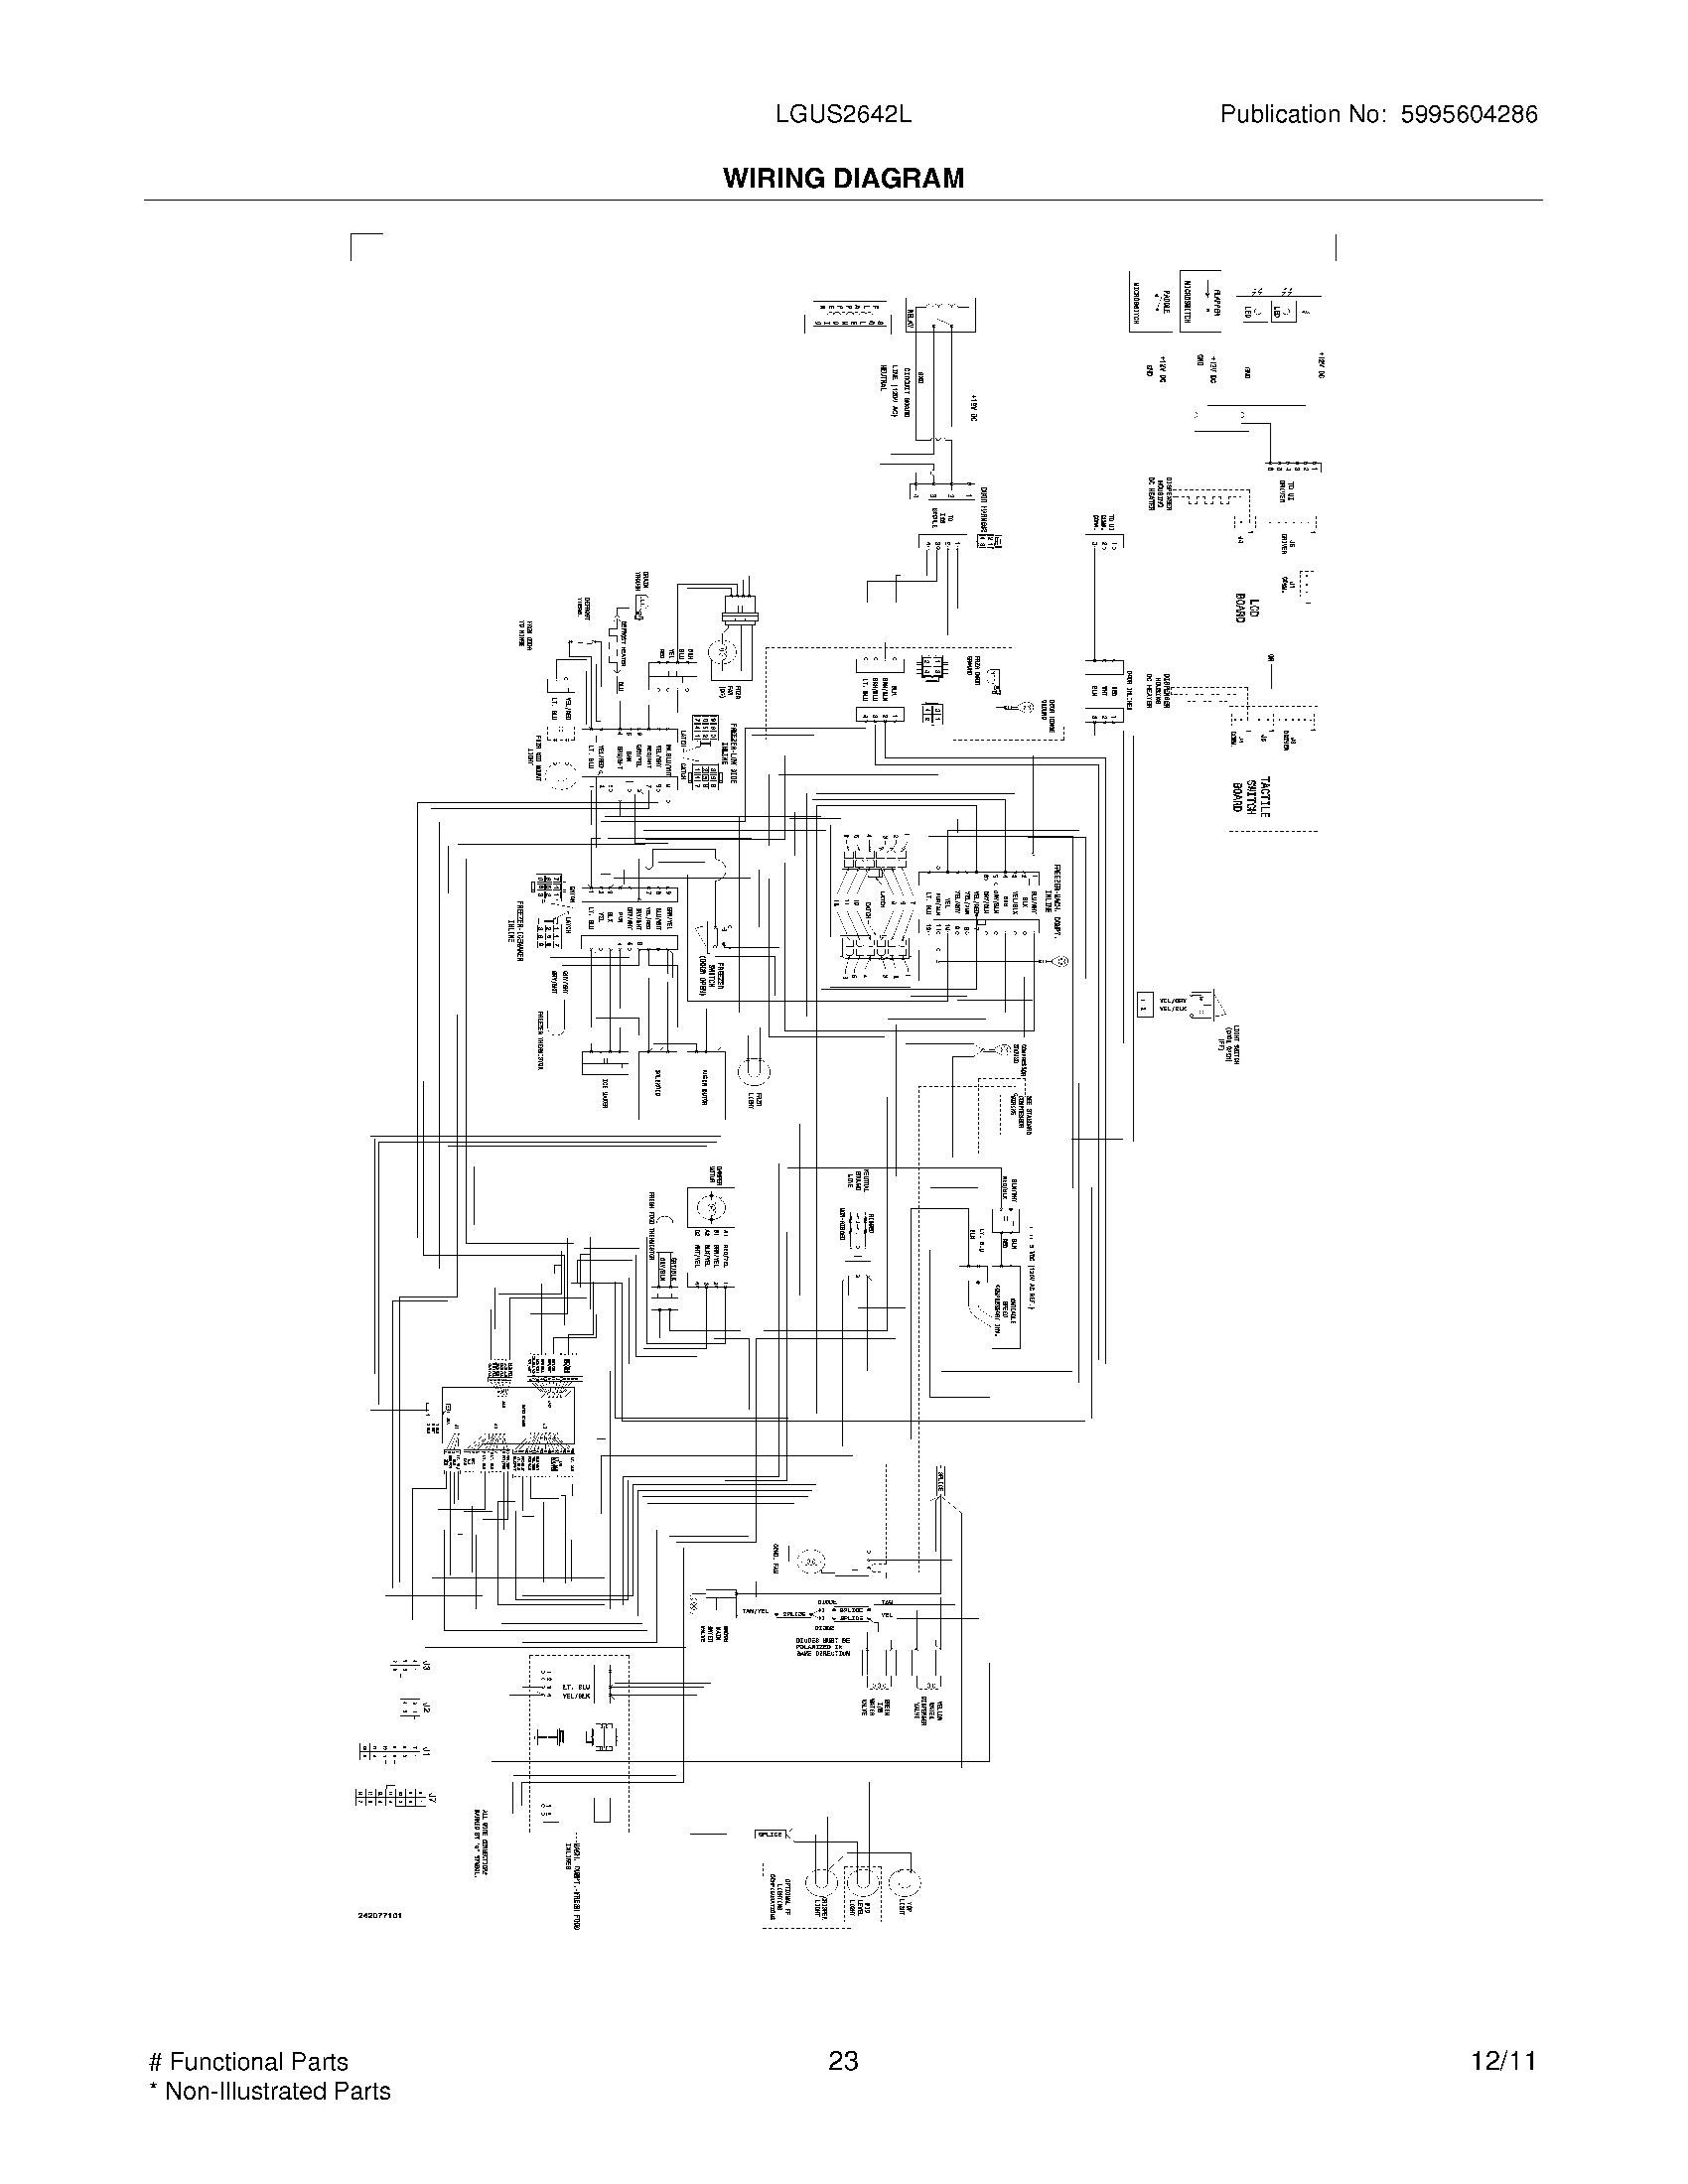 phase motor wiring diagram furthermore gfci outlet gfci line load wiring